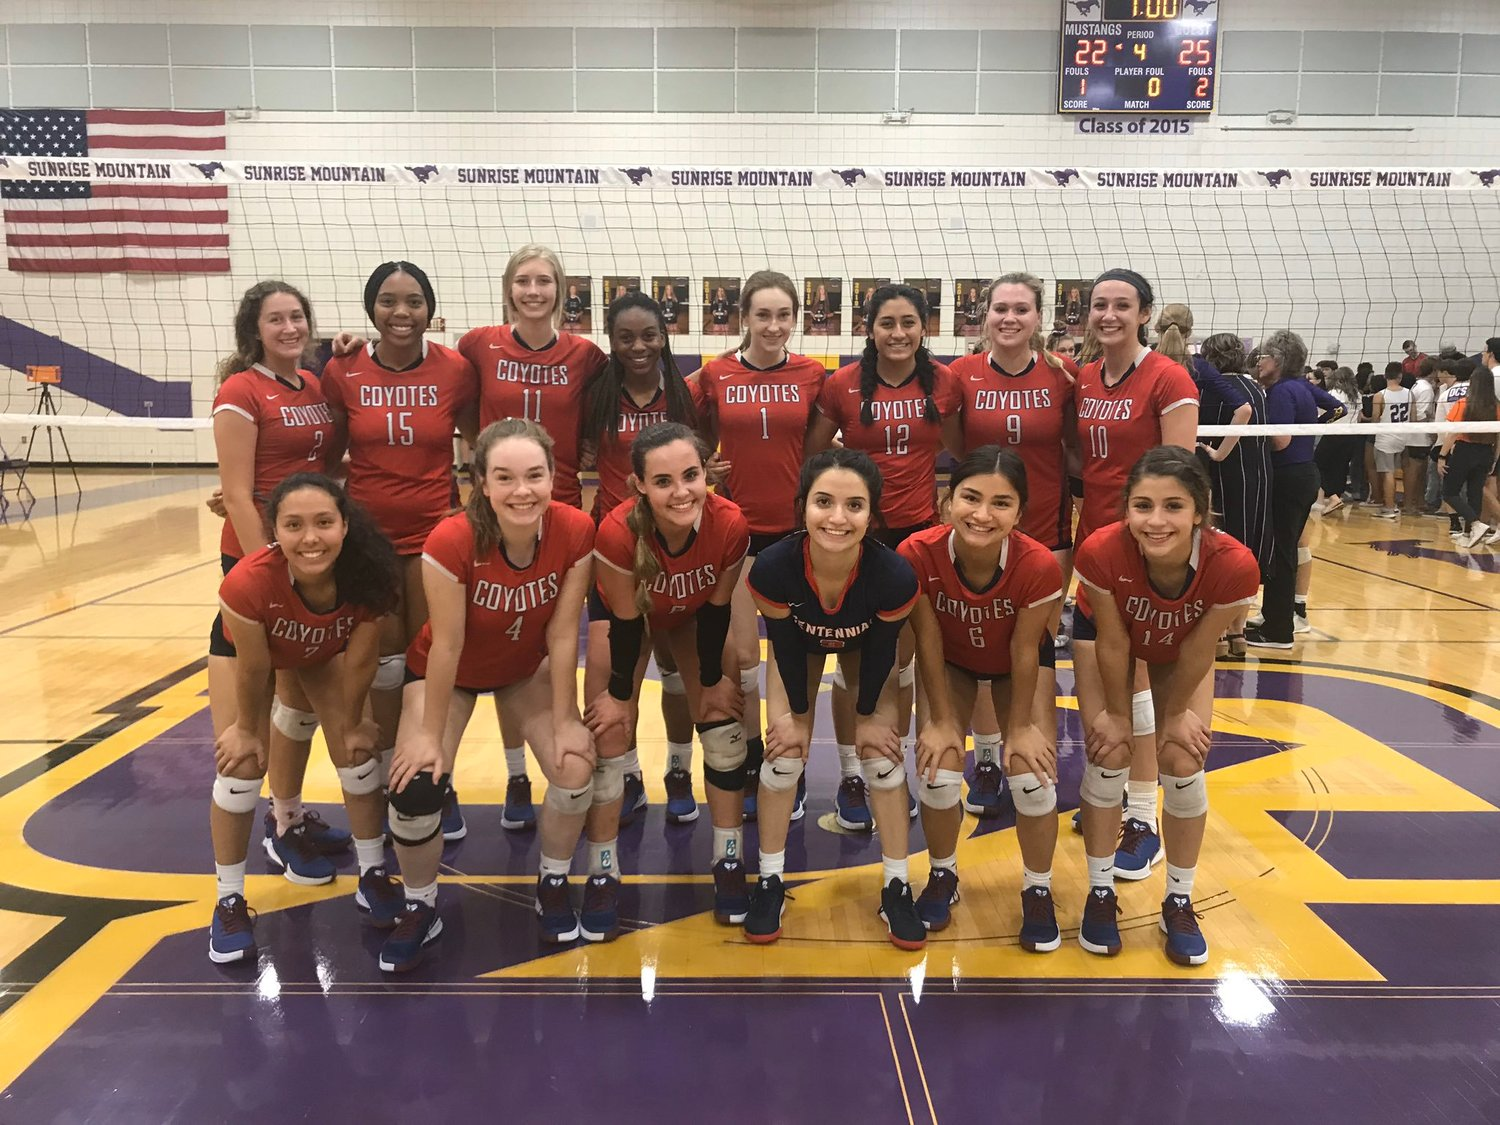 The Centennial girls volleyball team Oct. 22 at Sunrise Mountain High School in Peoria. PUSD voters can drop off mail ballots today for a final chance to share their view on the override election. The ballots can be dropped off at Centennial High School, 14388 N. 79th Ave., Peoria, AZ 85381.